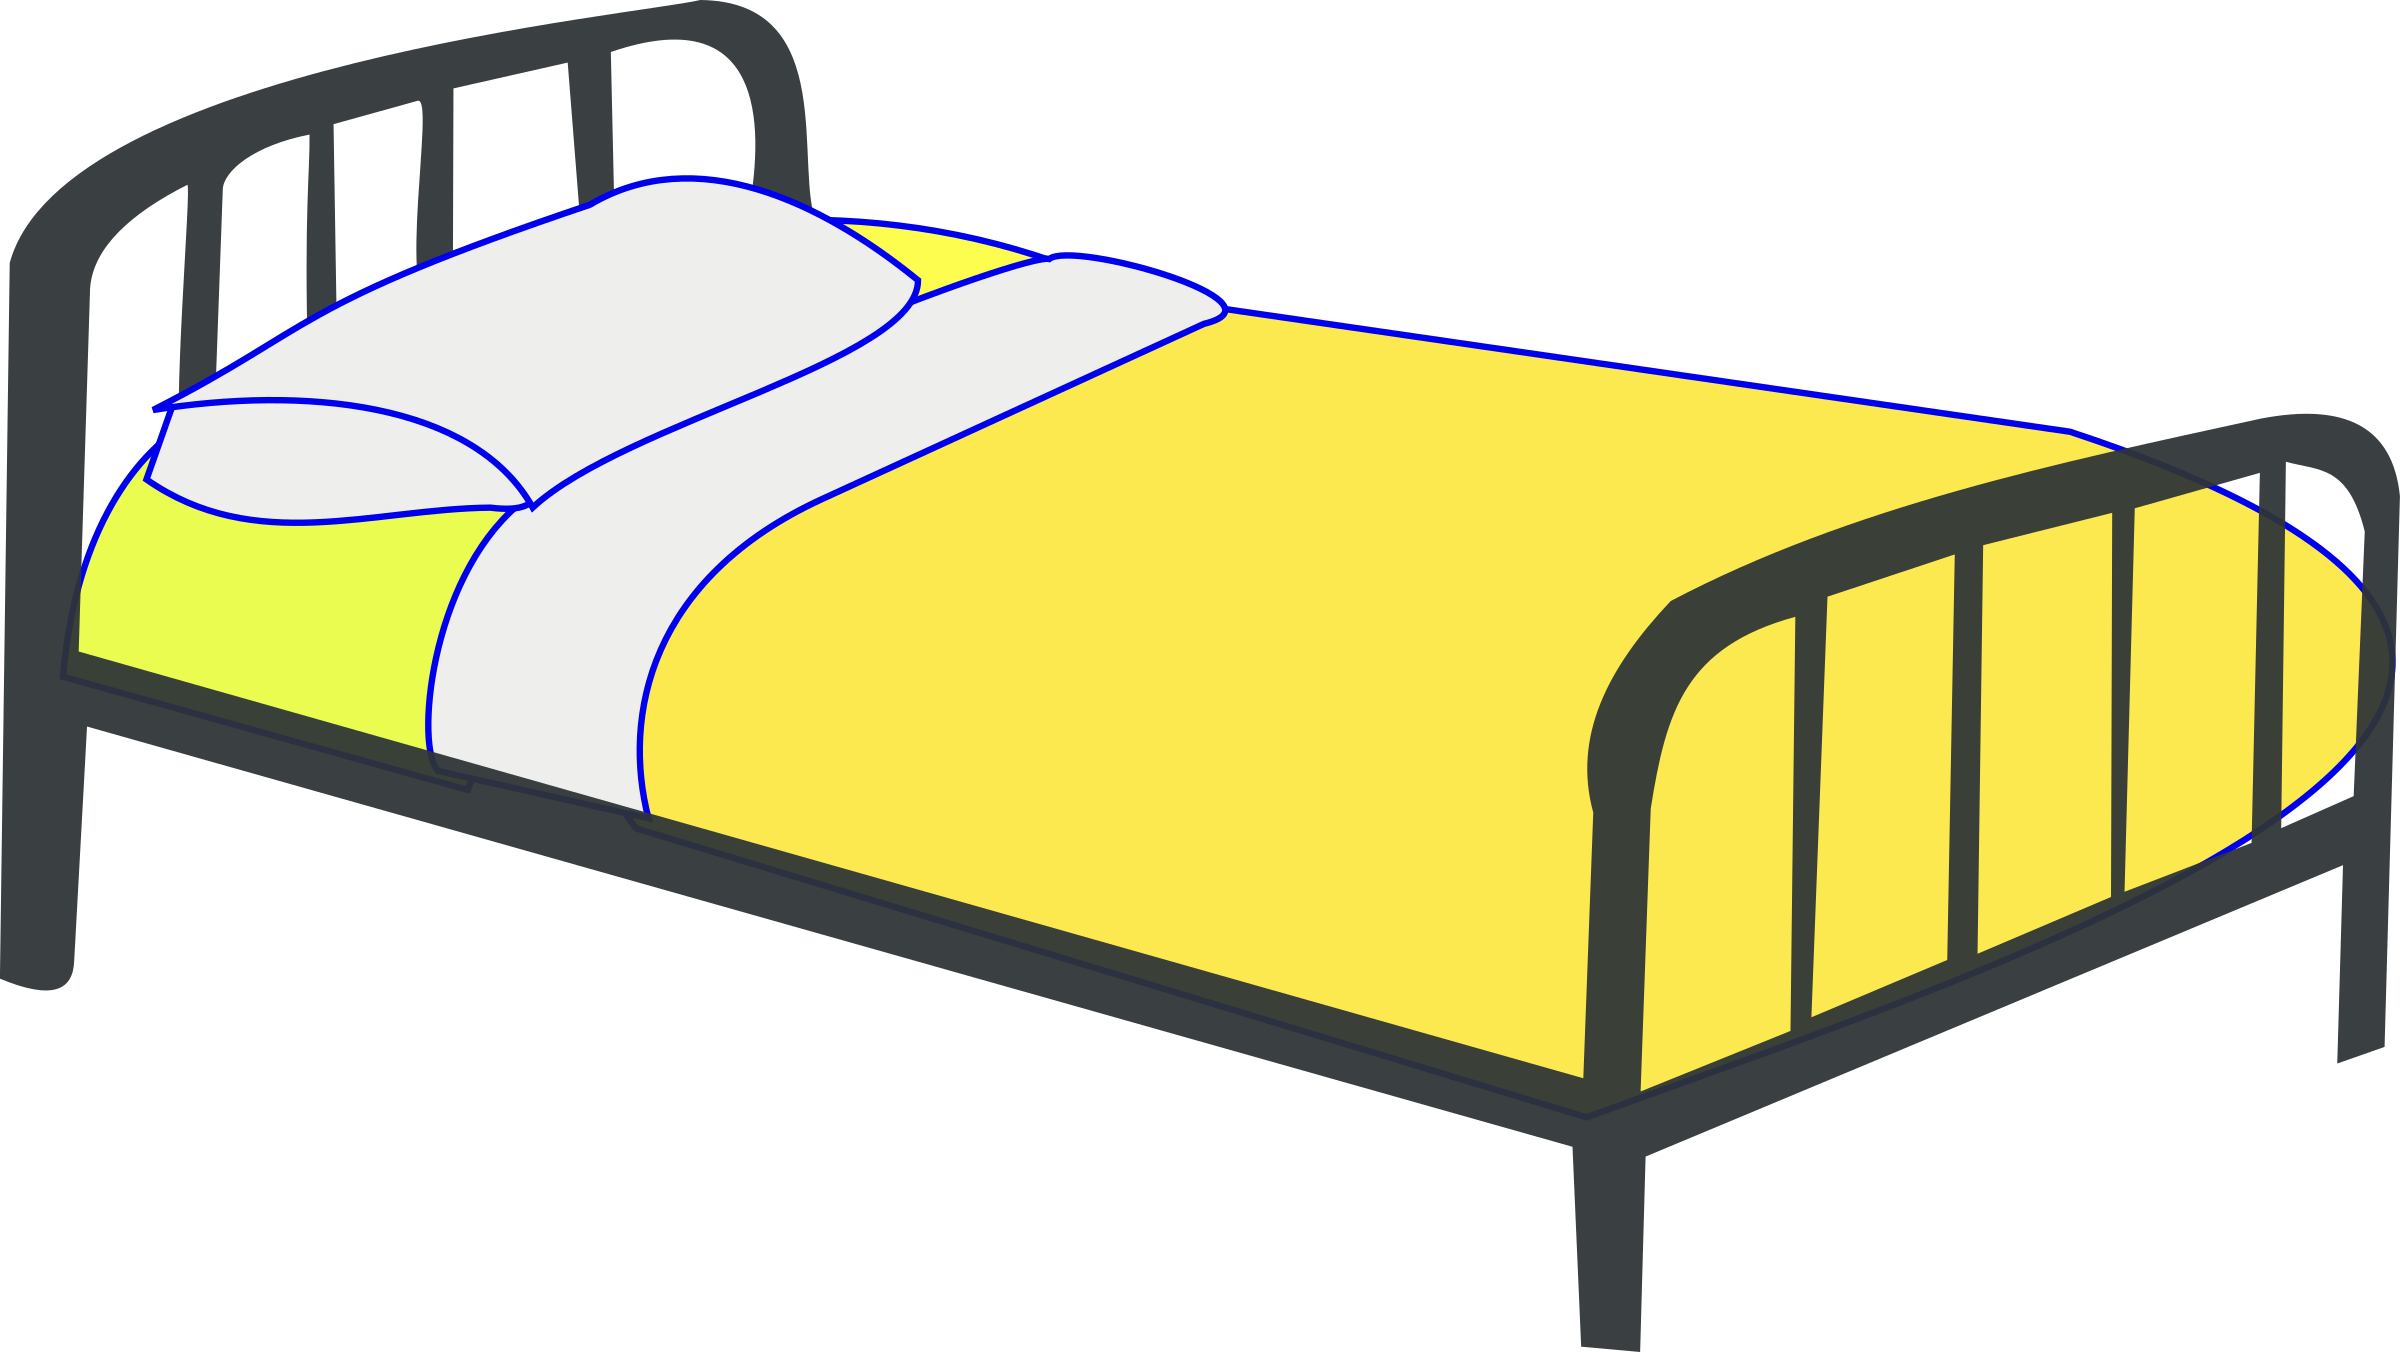 Single Bed by Rfc1394